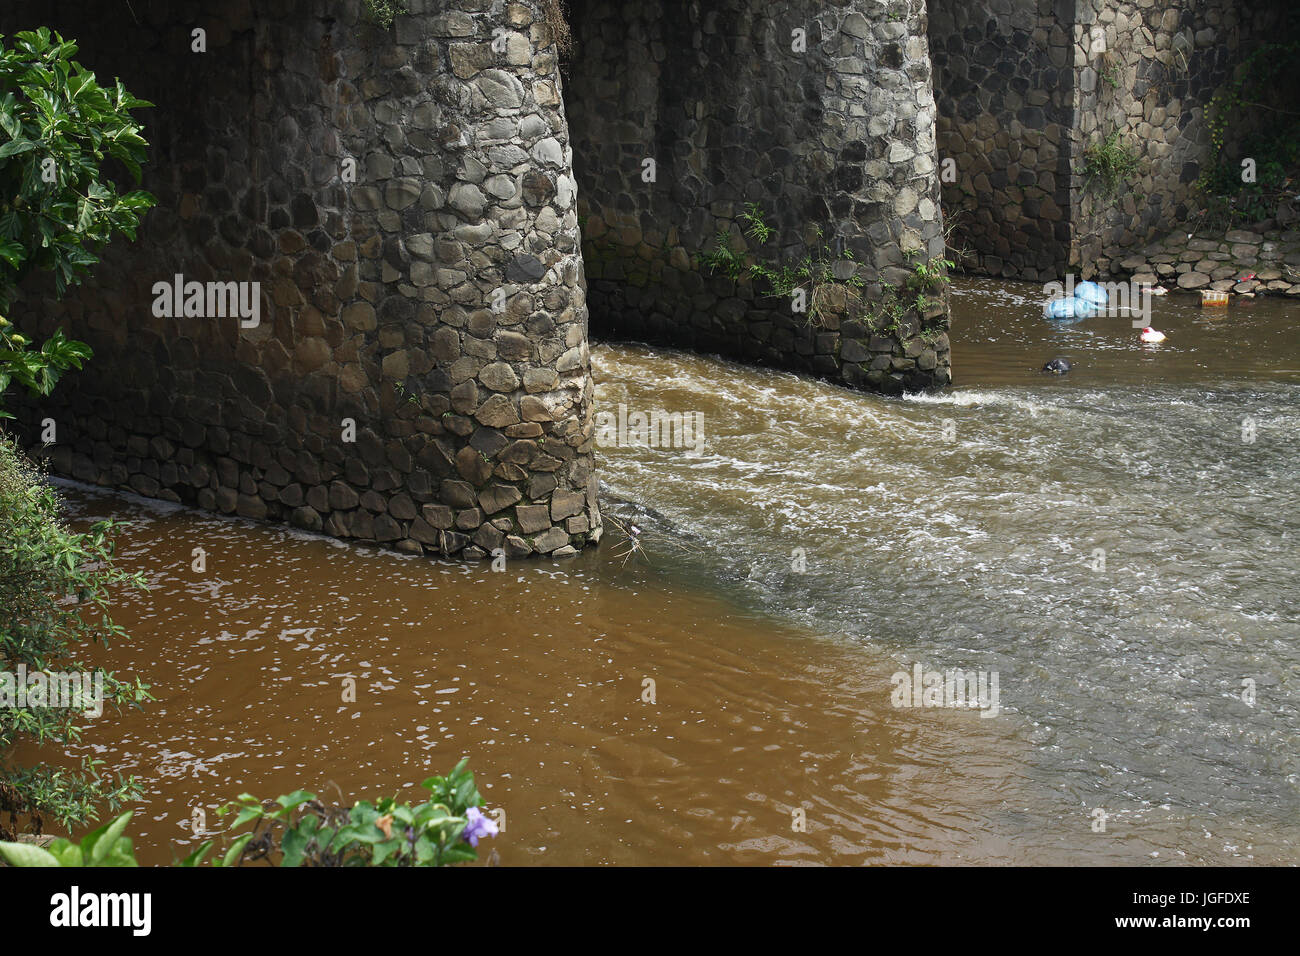 Scenery of a number of rivers in Bekasi, West Java contaminated with hazardous wastes on Thursday, July 6, 2017. - Stock Image